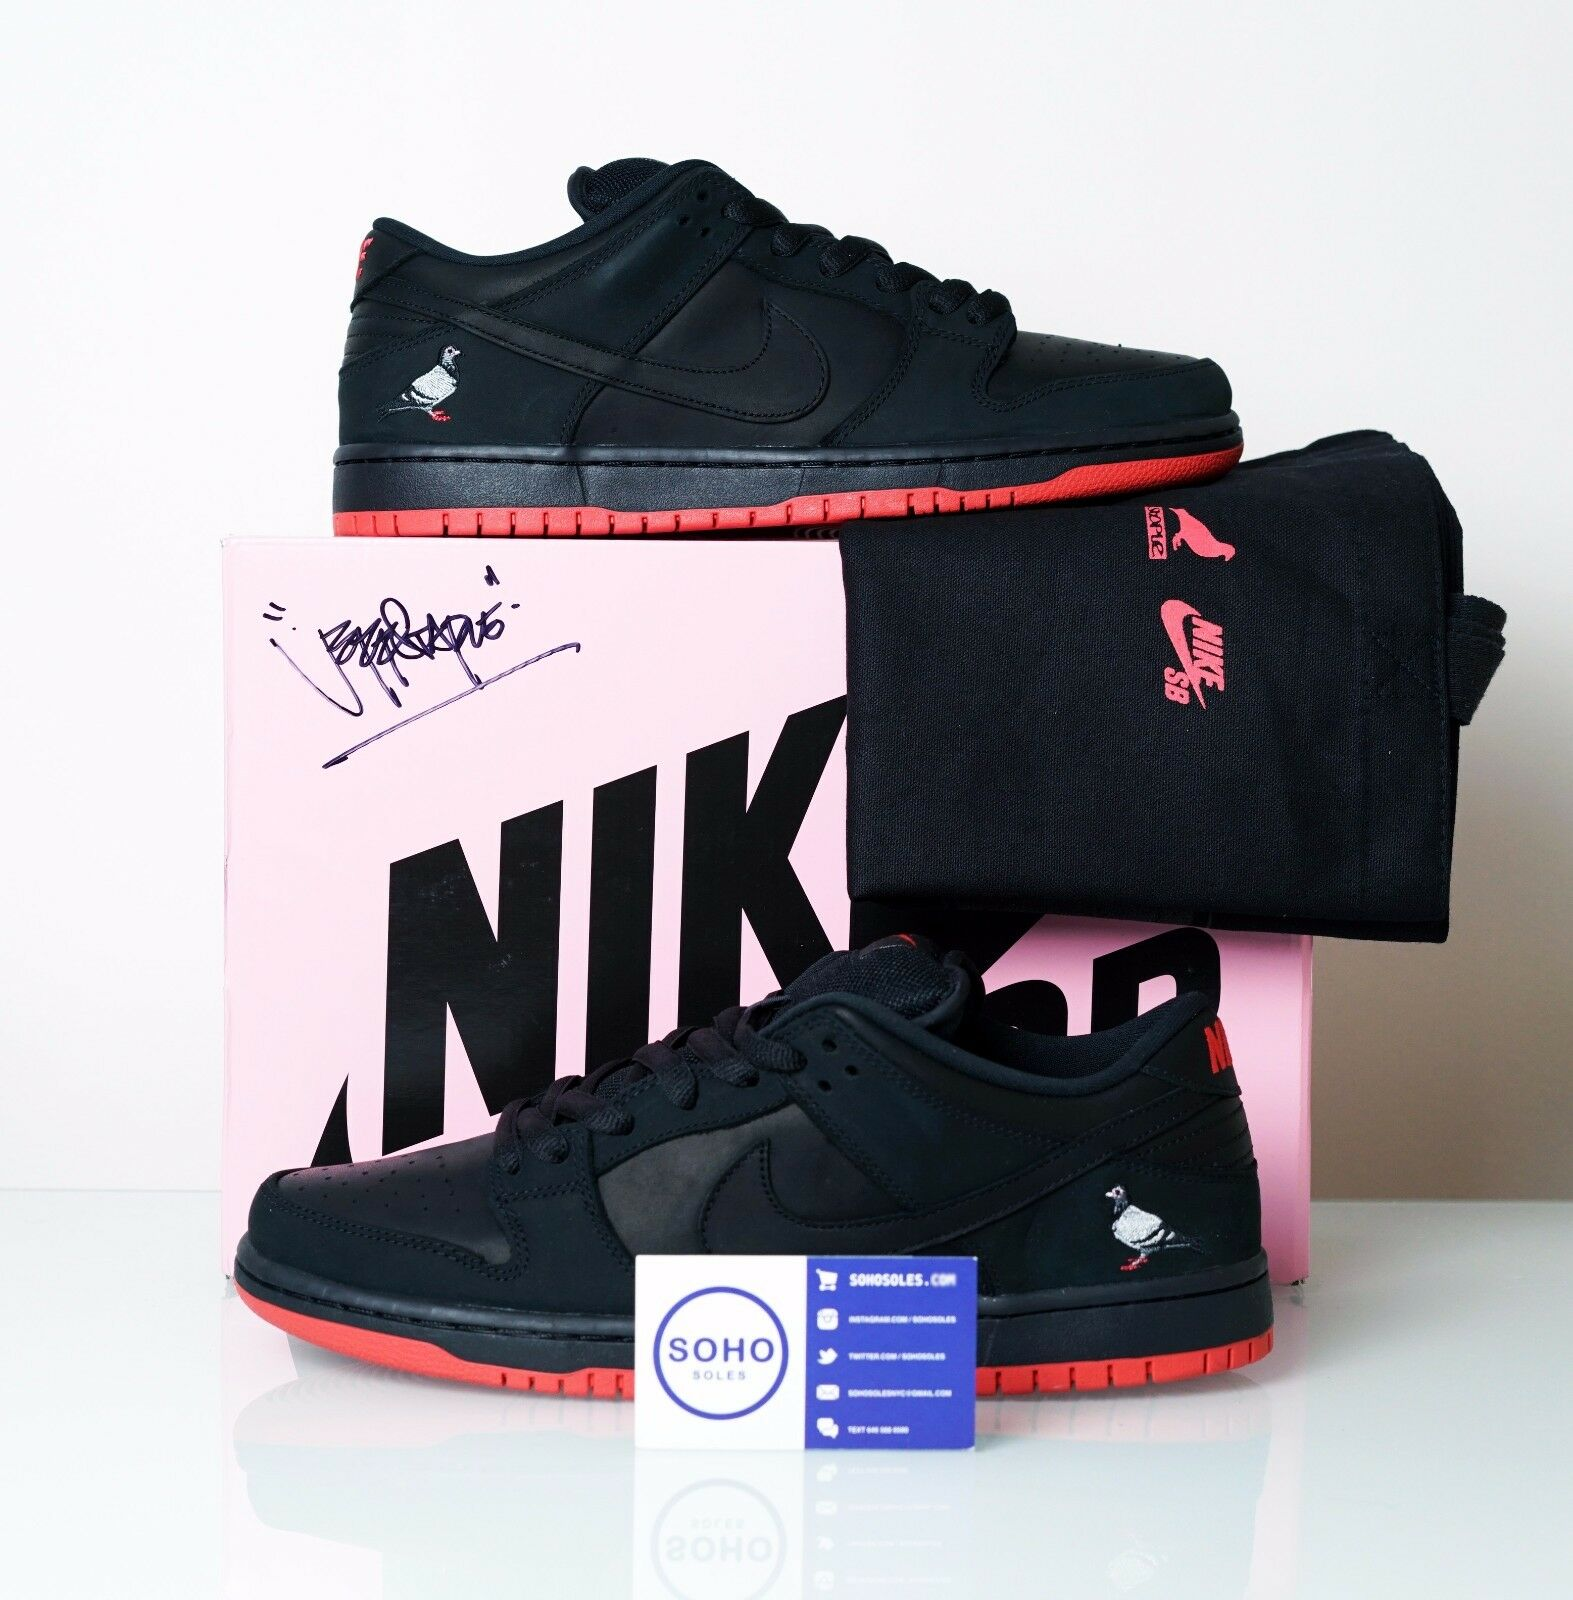 NIKE SB DUNK LOW BLACK PIGEON STAPLE LASERED + SIGNED BOX + TOTE - SIZE 8-12